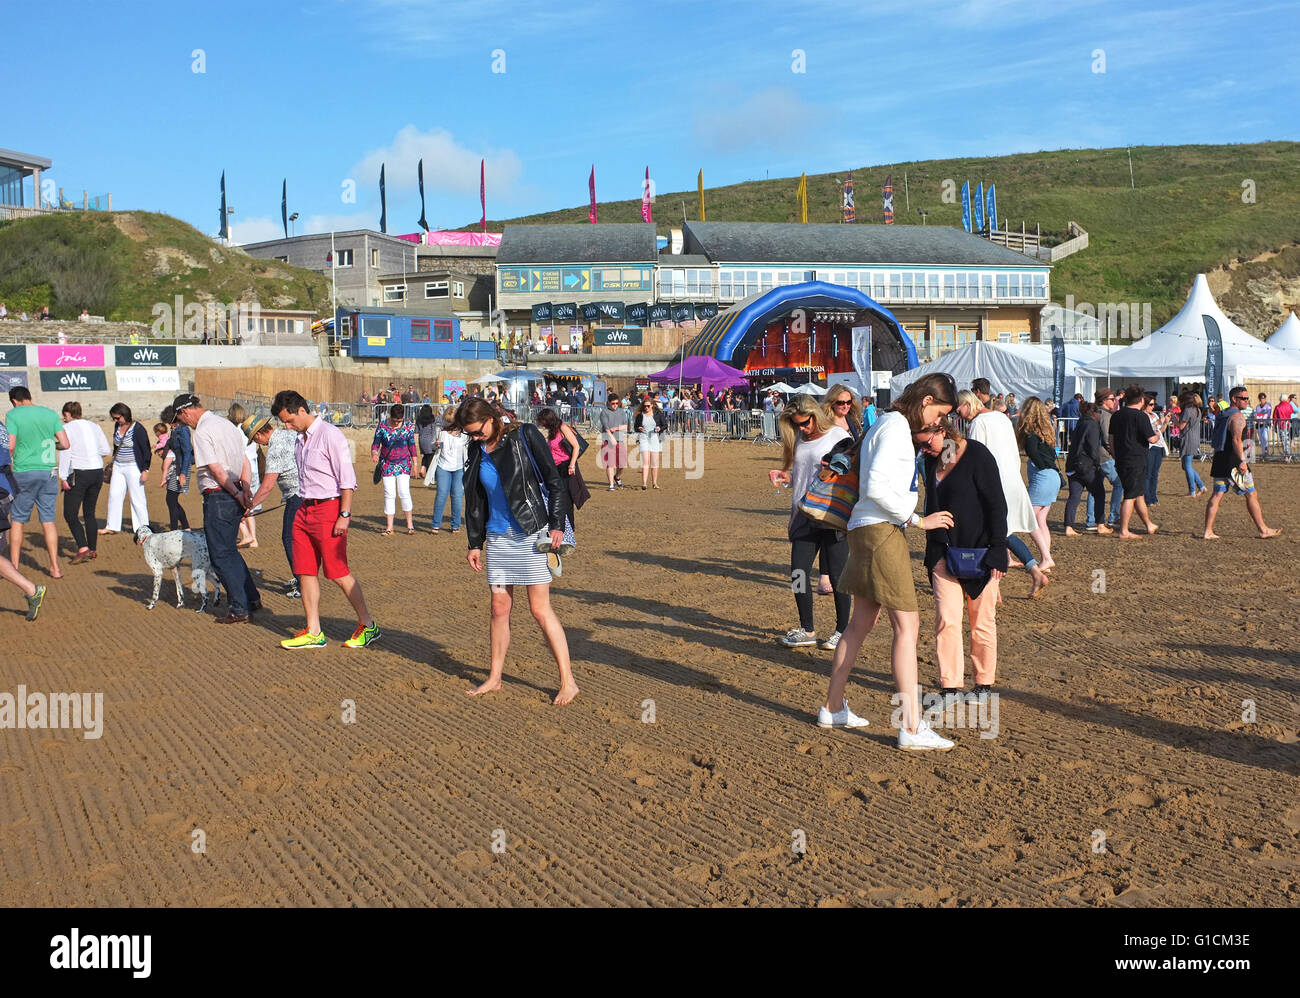 spectators at a Polo match on the beach at Watergate bay in Cornwall, UK, doing the ritual half-time divot stomping - Stock Image